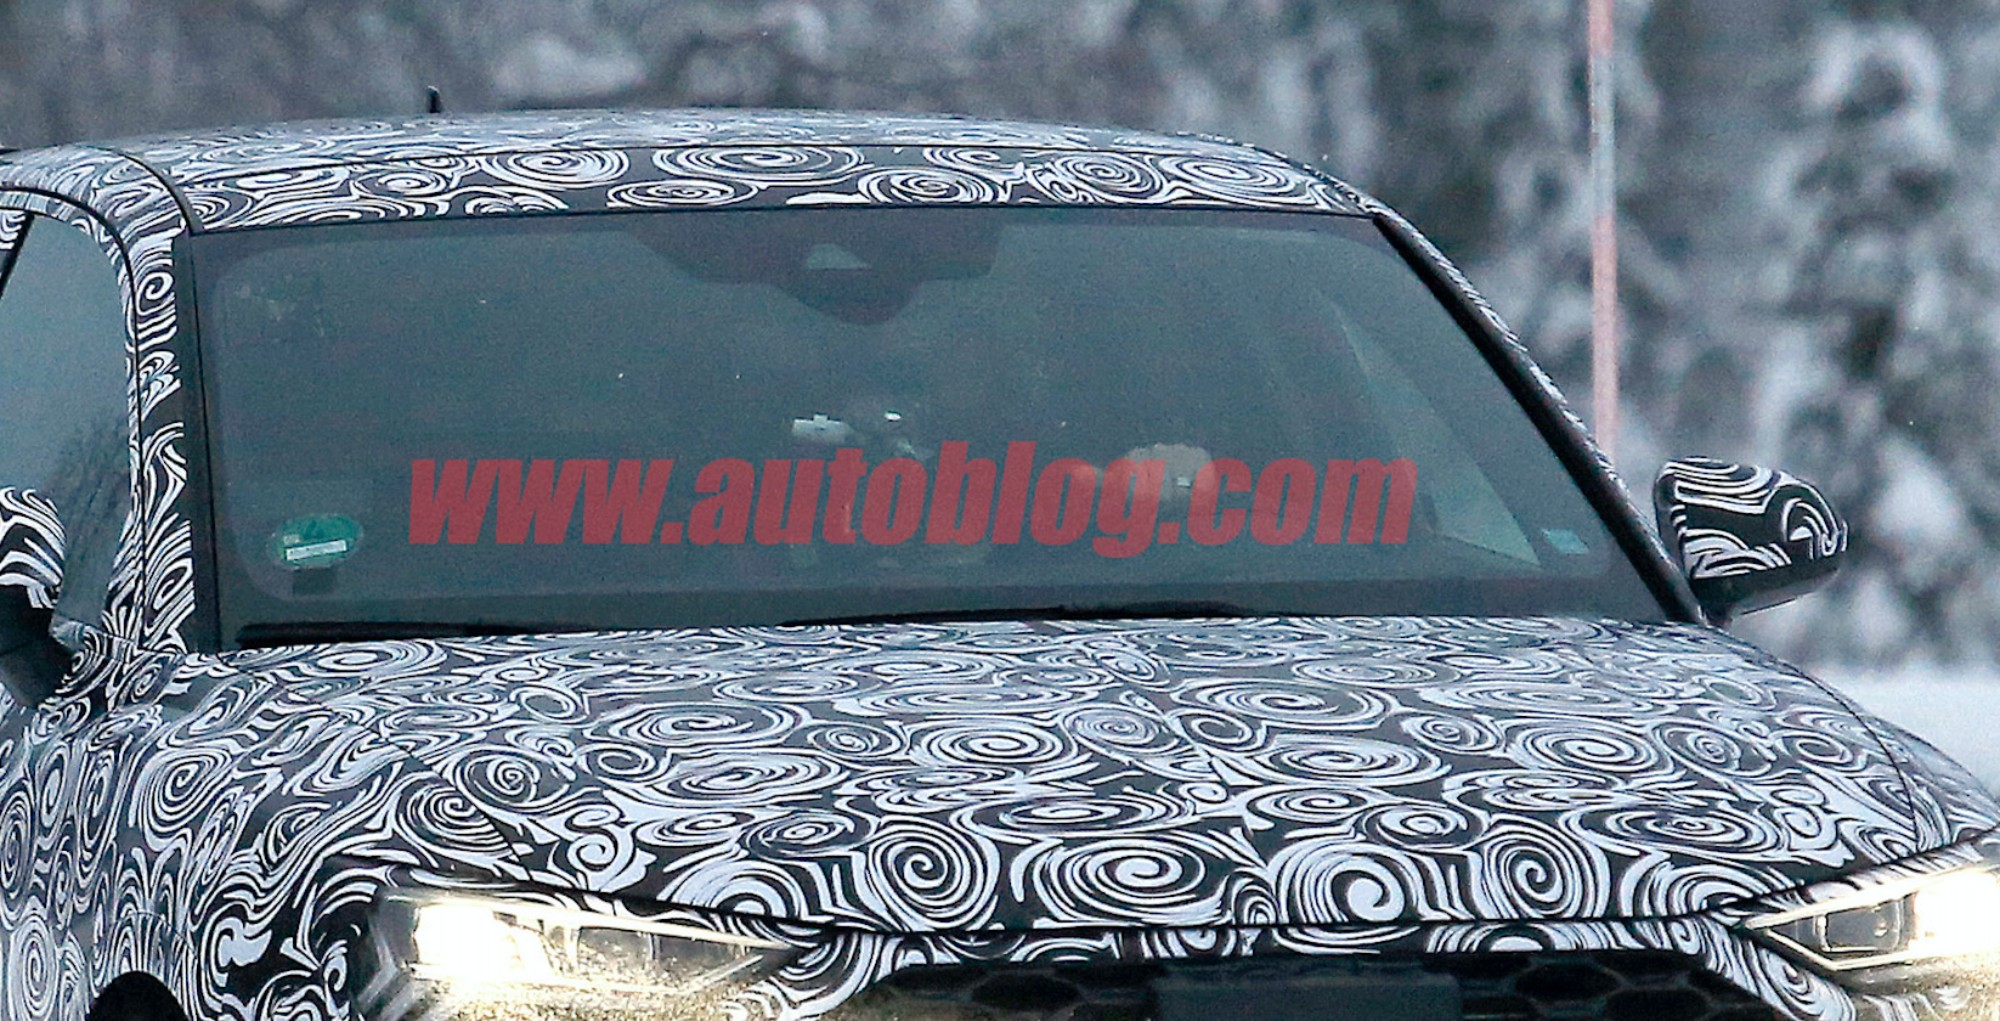 Autoblog: 2020 Audi Q4 Spy Shots Give Us Our Clearest Look At The Crossover